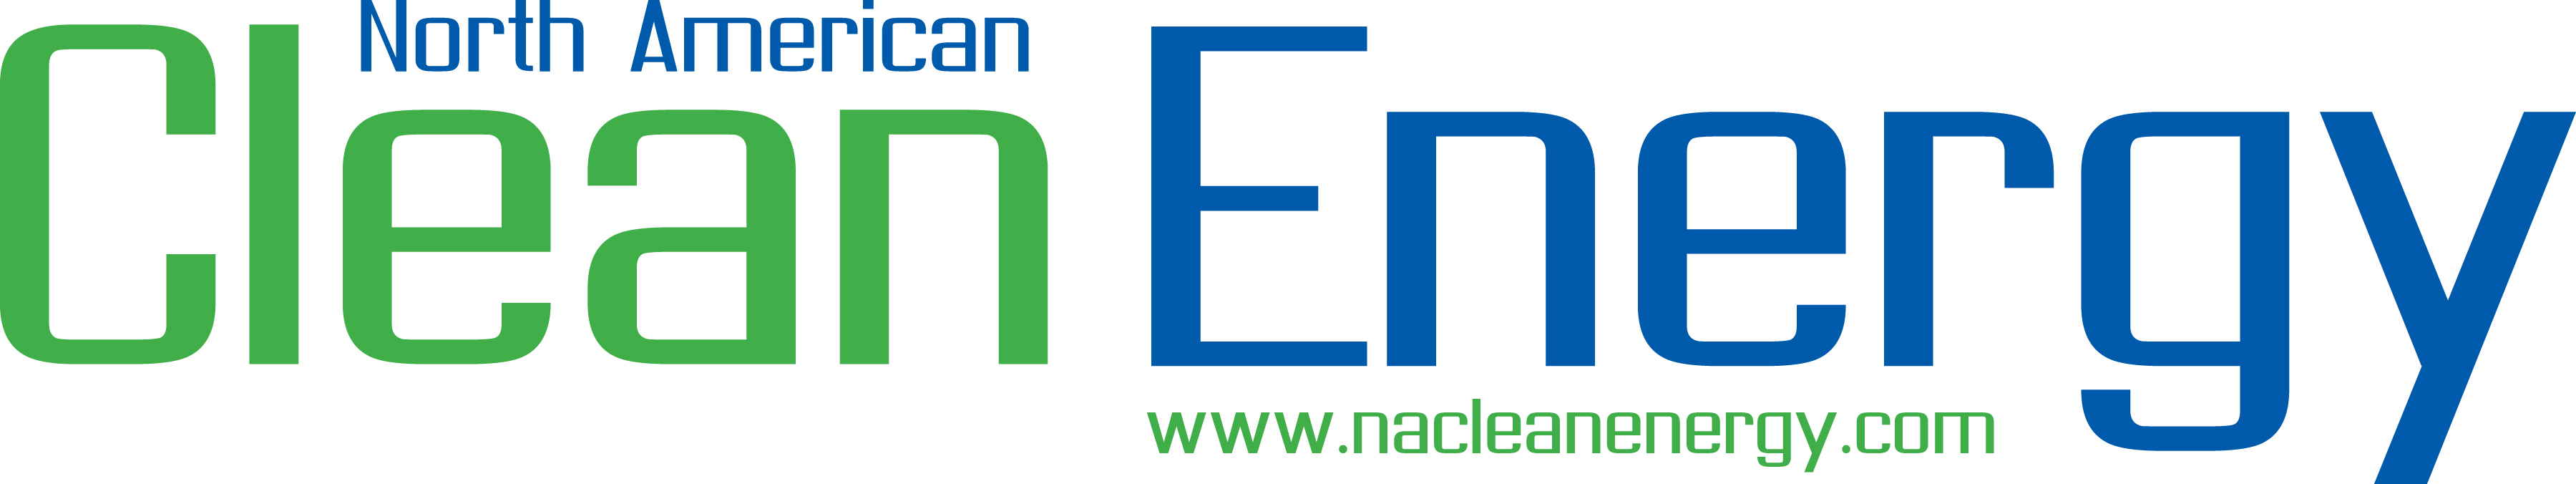 NA Clean Energy logo